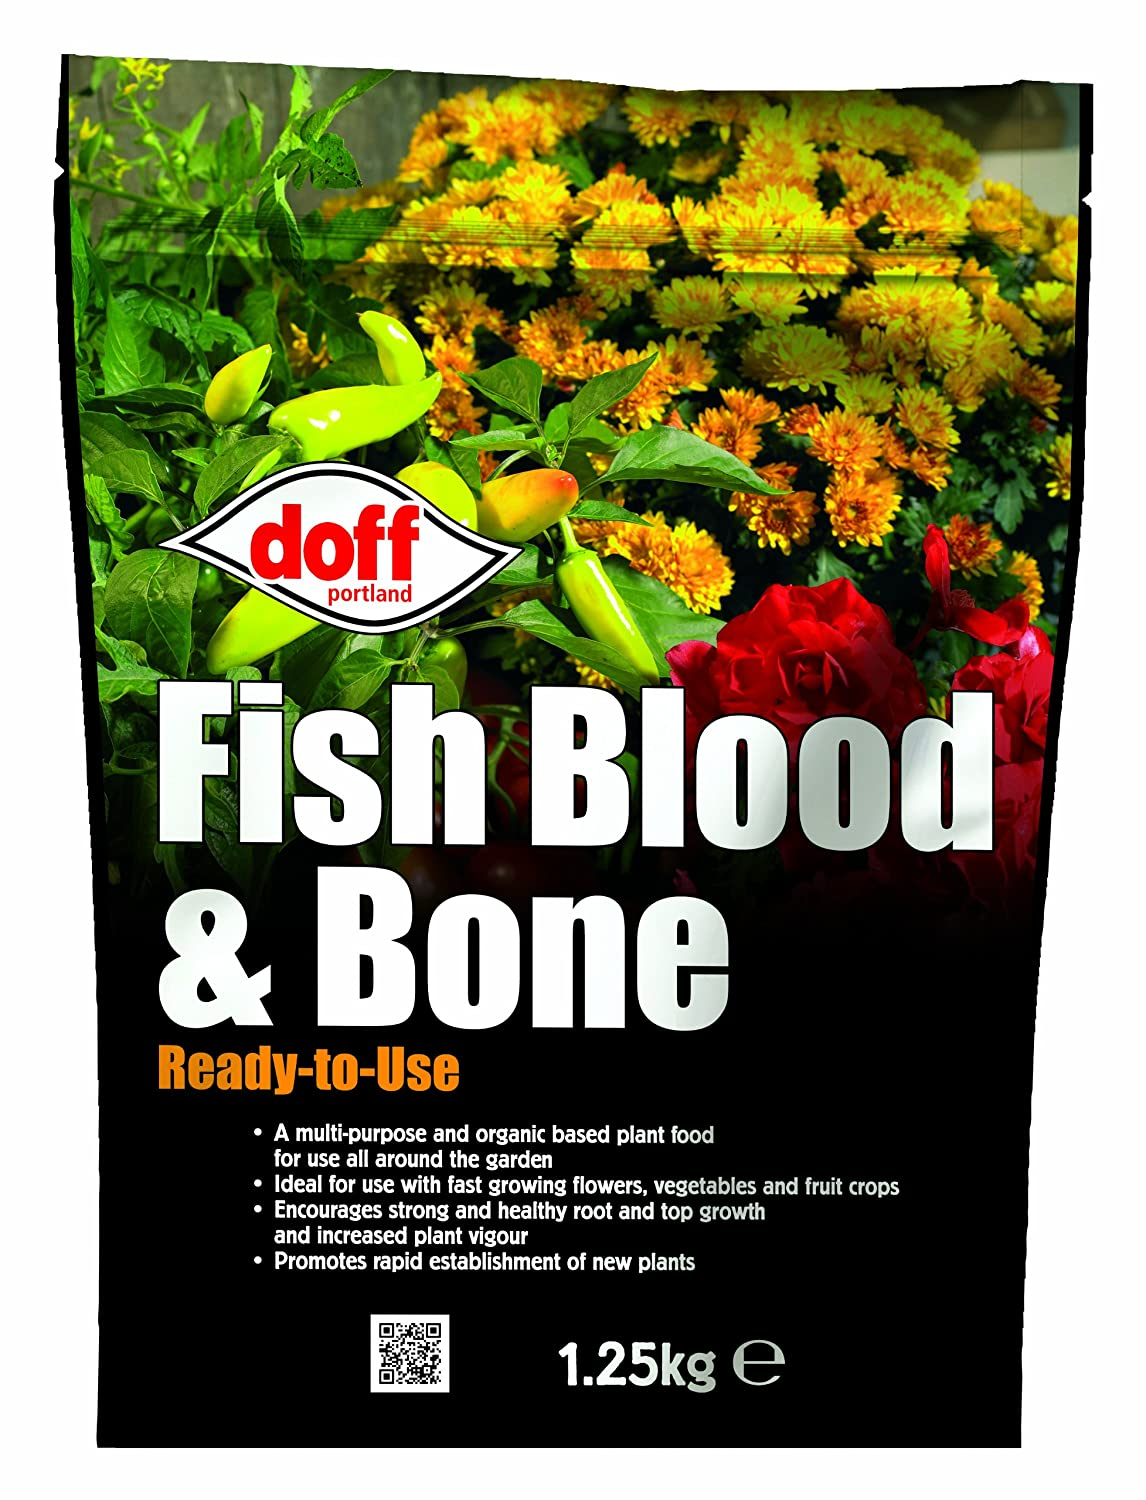 Doff 1.25Kg Fish Blood and Bone Ready-to-Use Doff Portland Ltd F-MC-A25-DOF